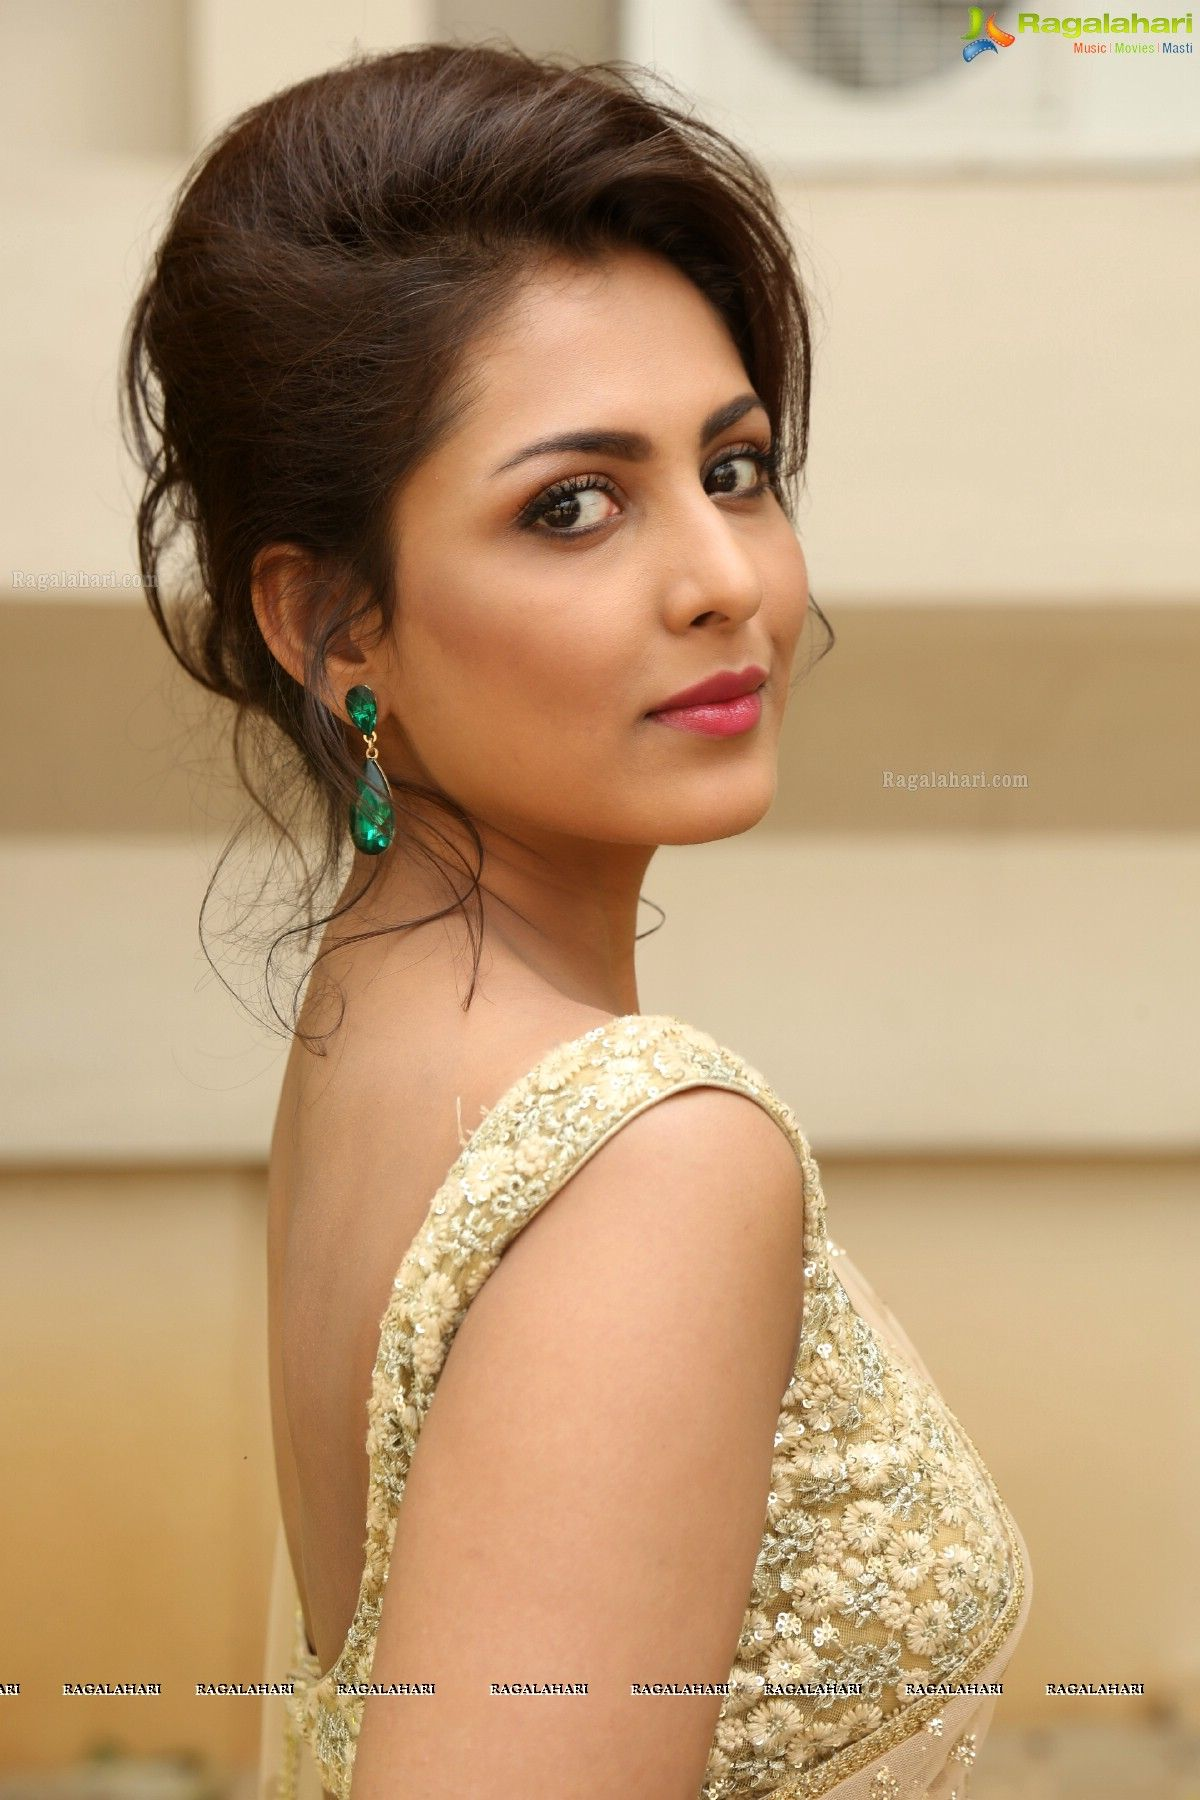 Madhu Shalini Nude Photos Great madhu shalini in saree photos - image 35 | indian fashion